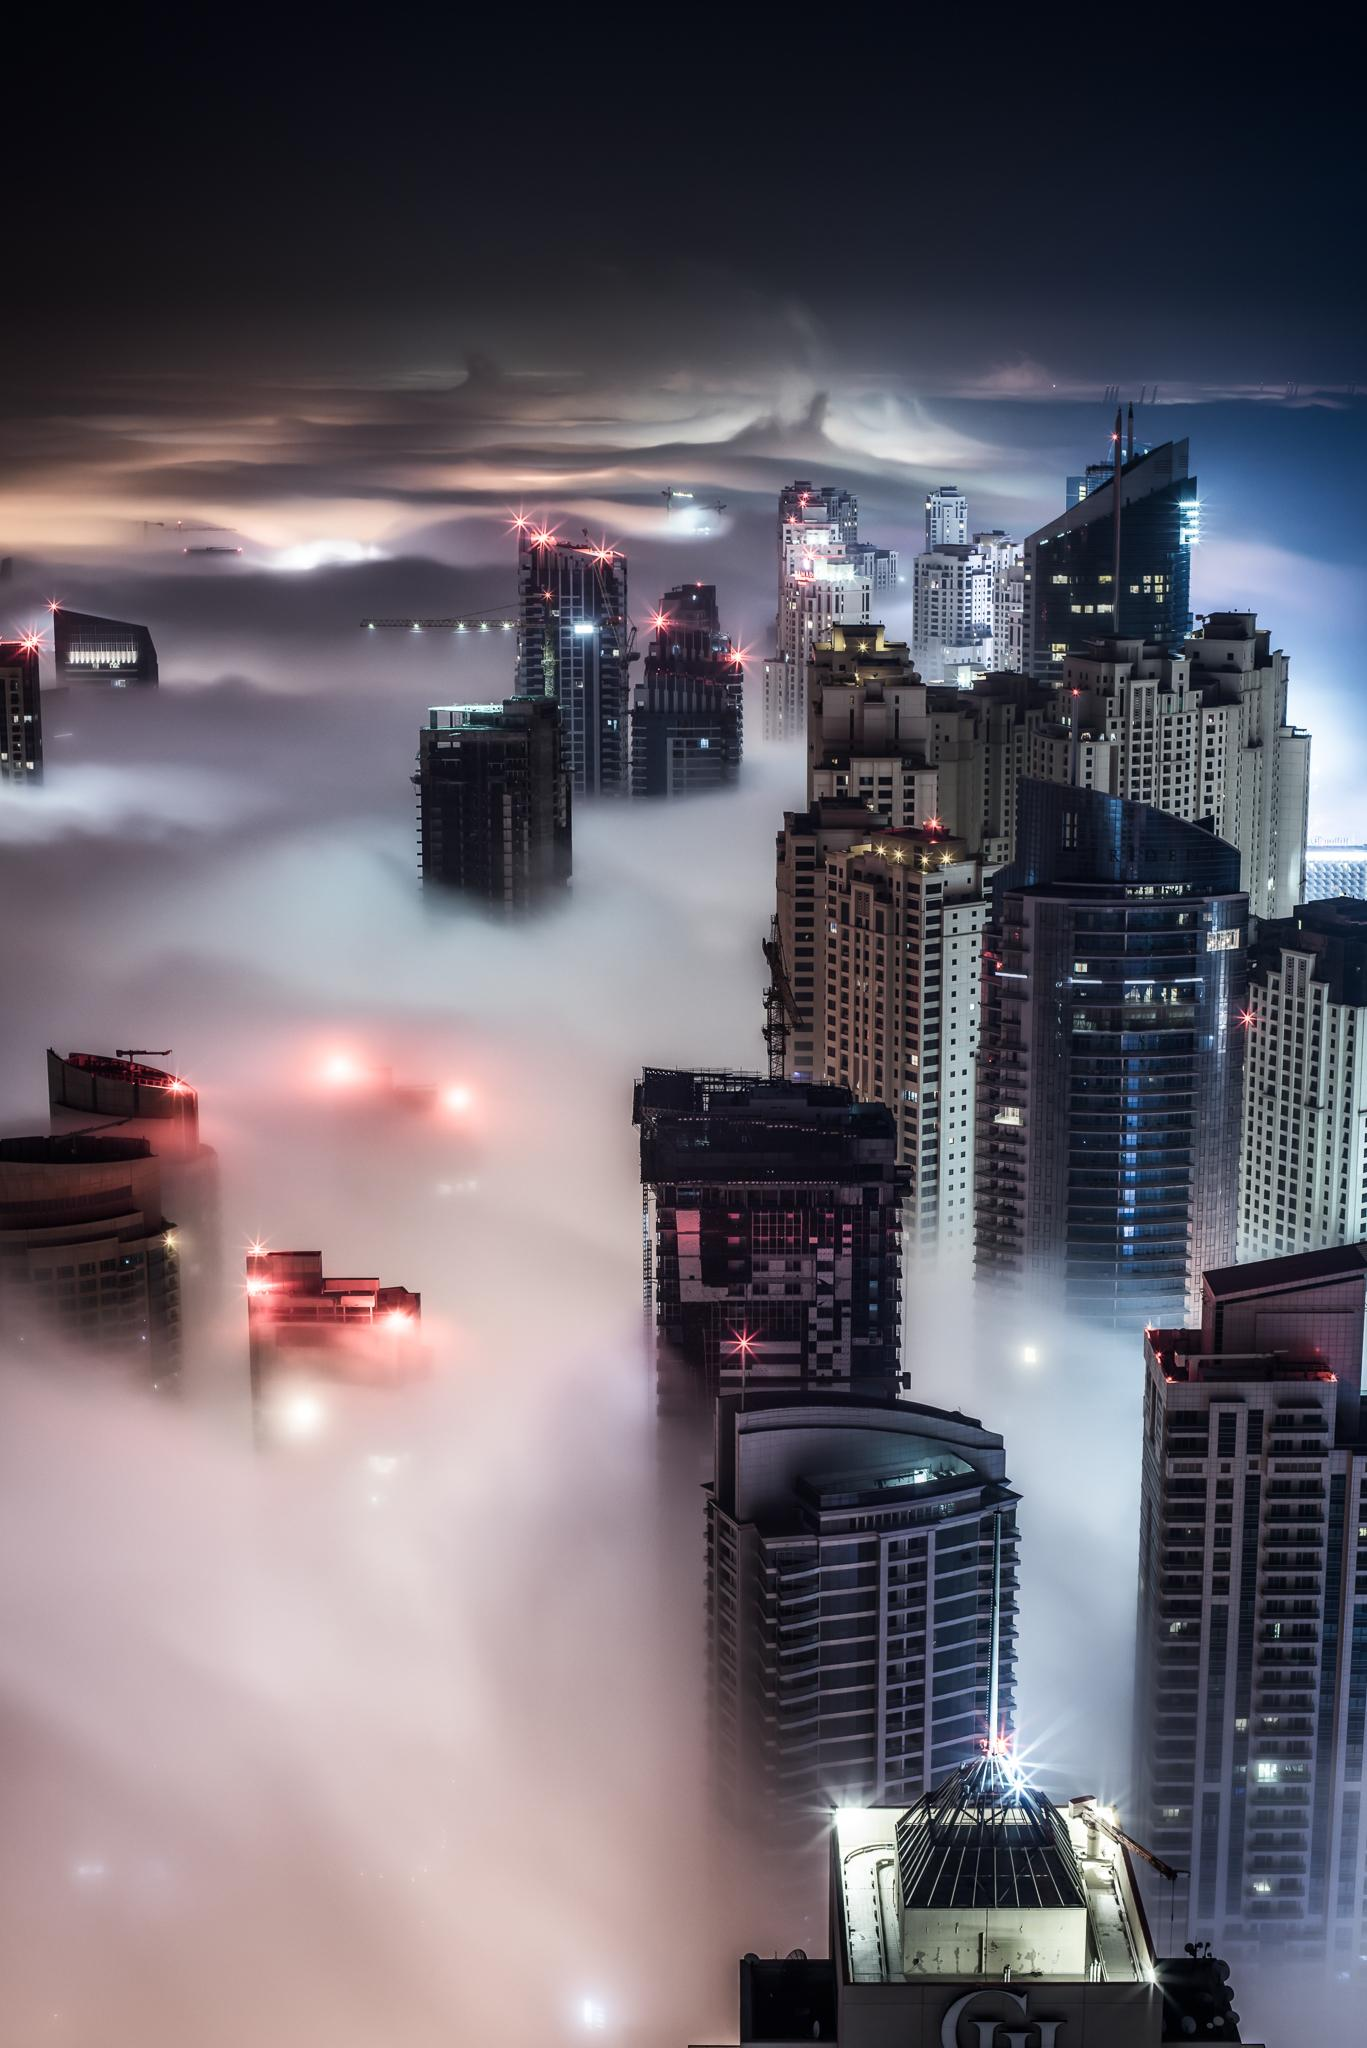 city night skyscrapers fog wallpaper